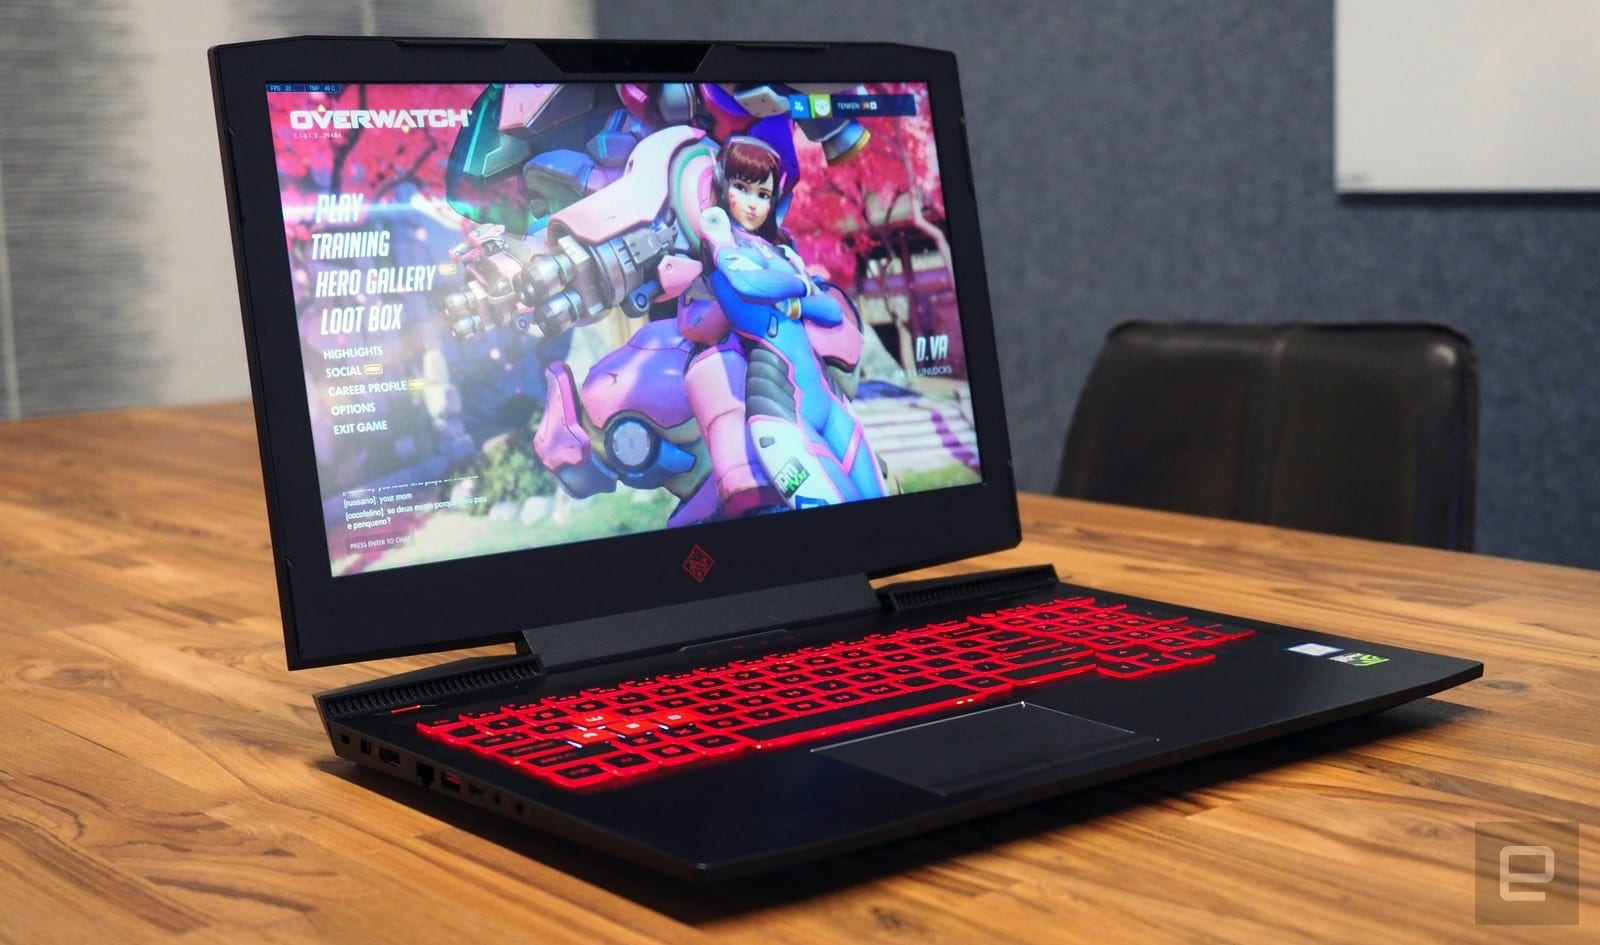 HP Omen 15 review (2017): A gaming laptop for everyone